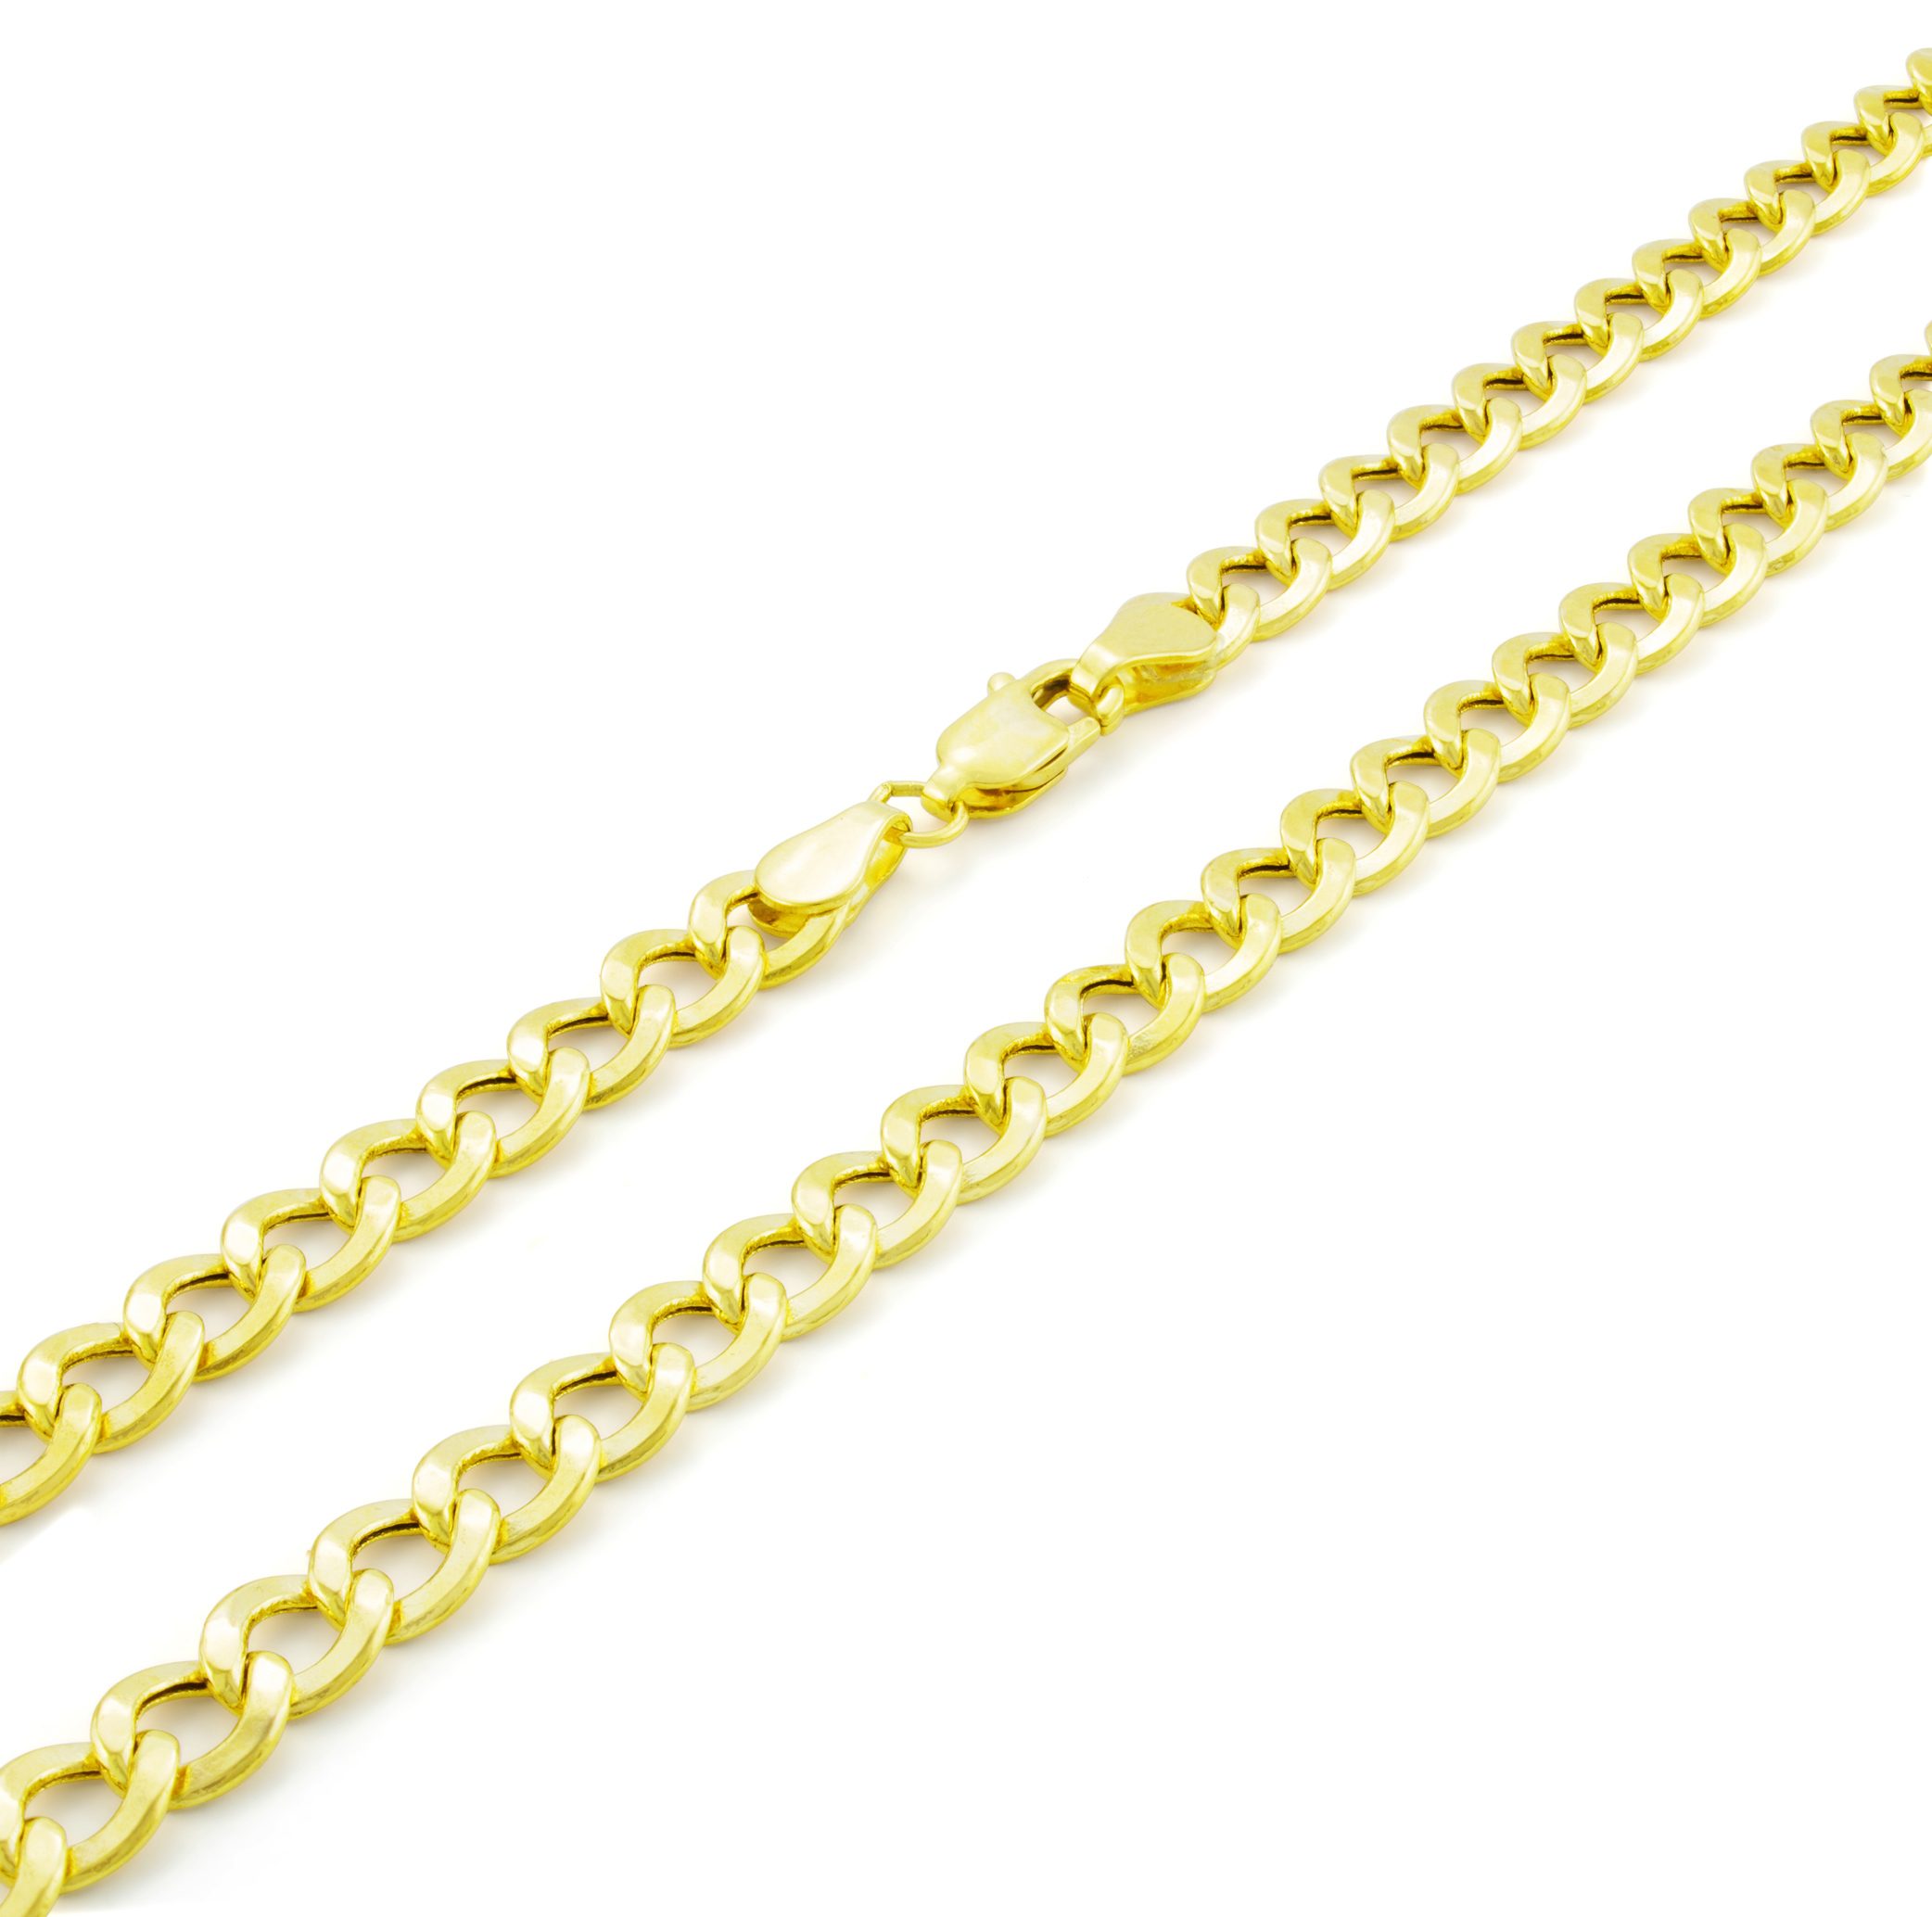 Real-10K-Yellow-Gold-6-5mm-Cuban-Curb-Chain-Link-Bracelet-Lobster-Clasp-7-034-8-034-9-034 thumbnail 16